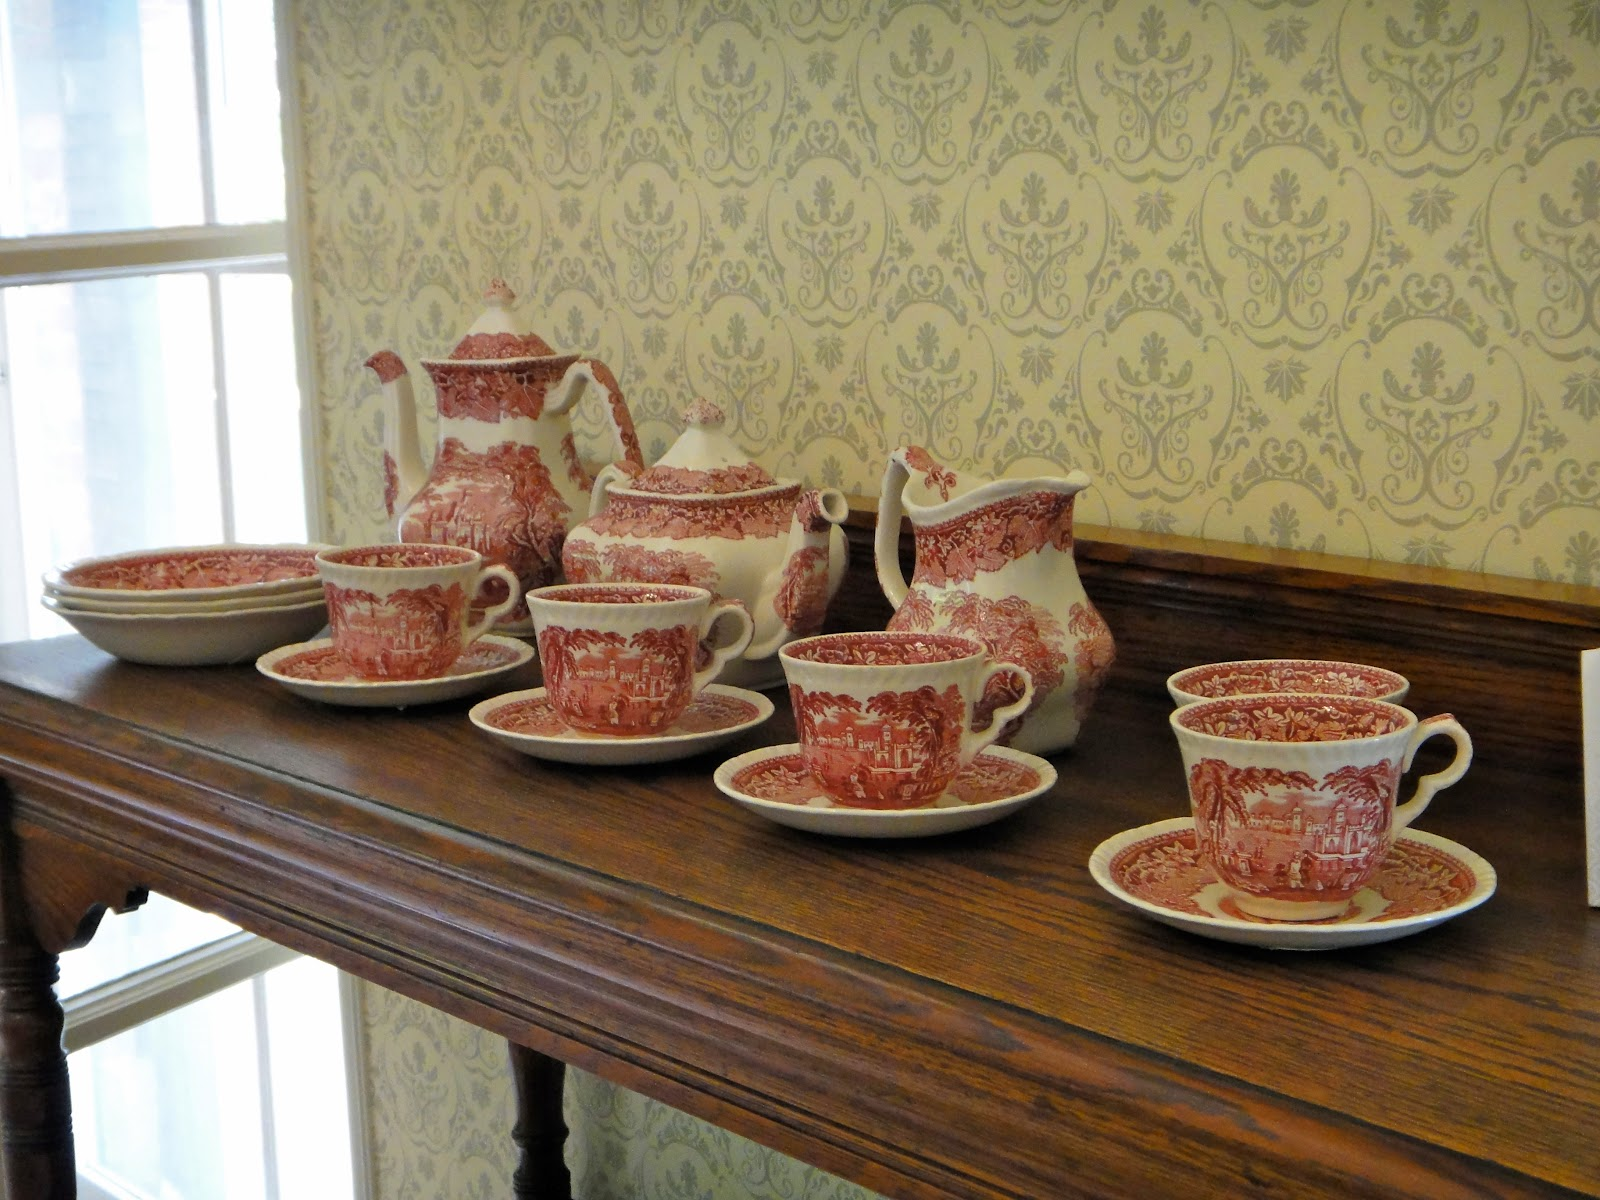 Afternoon tea cups British Consular Residence Tamsui